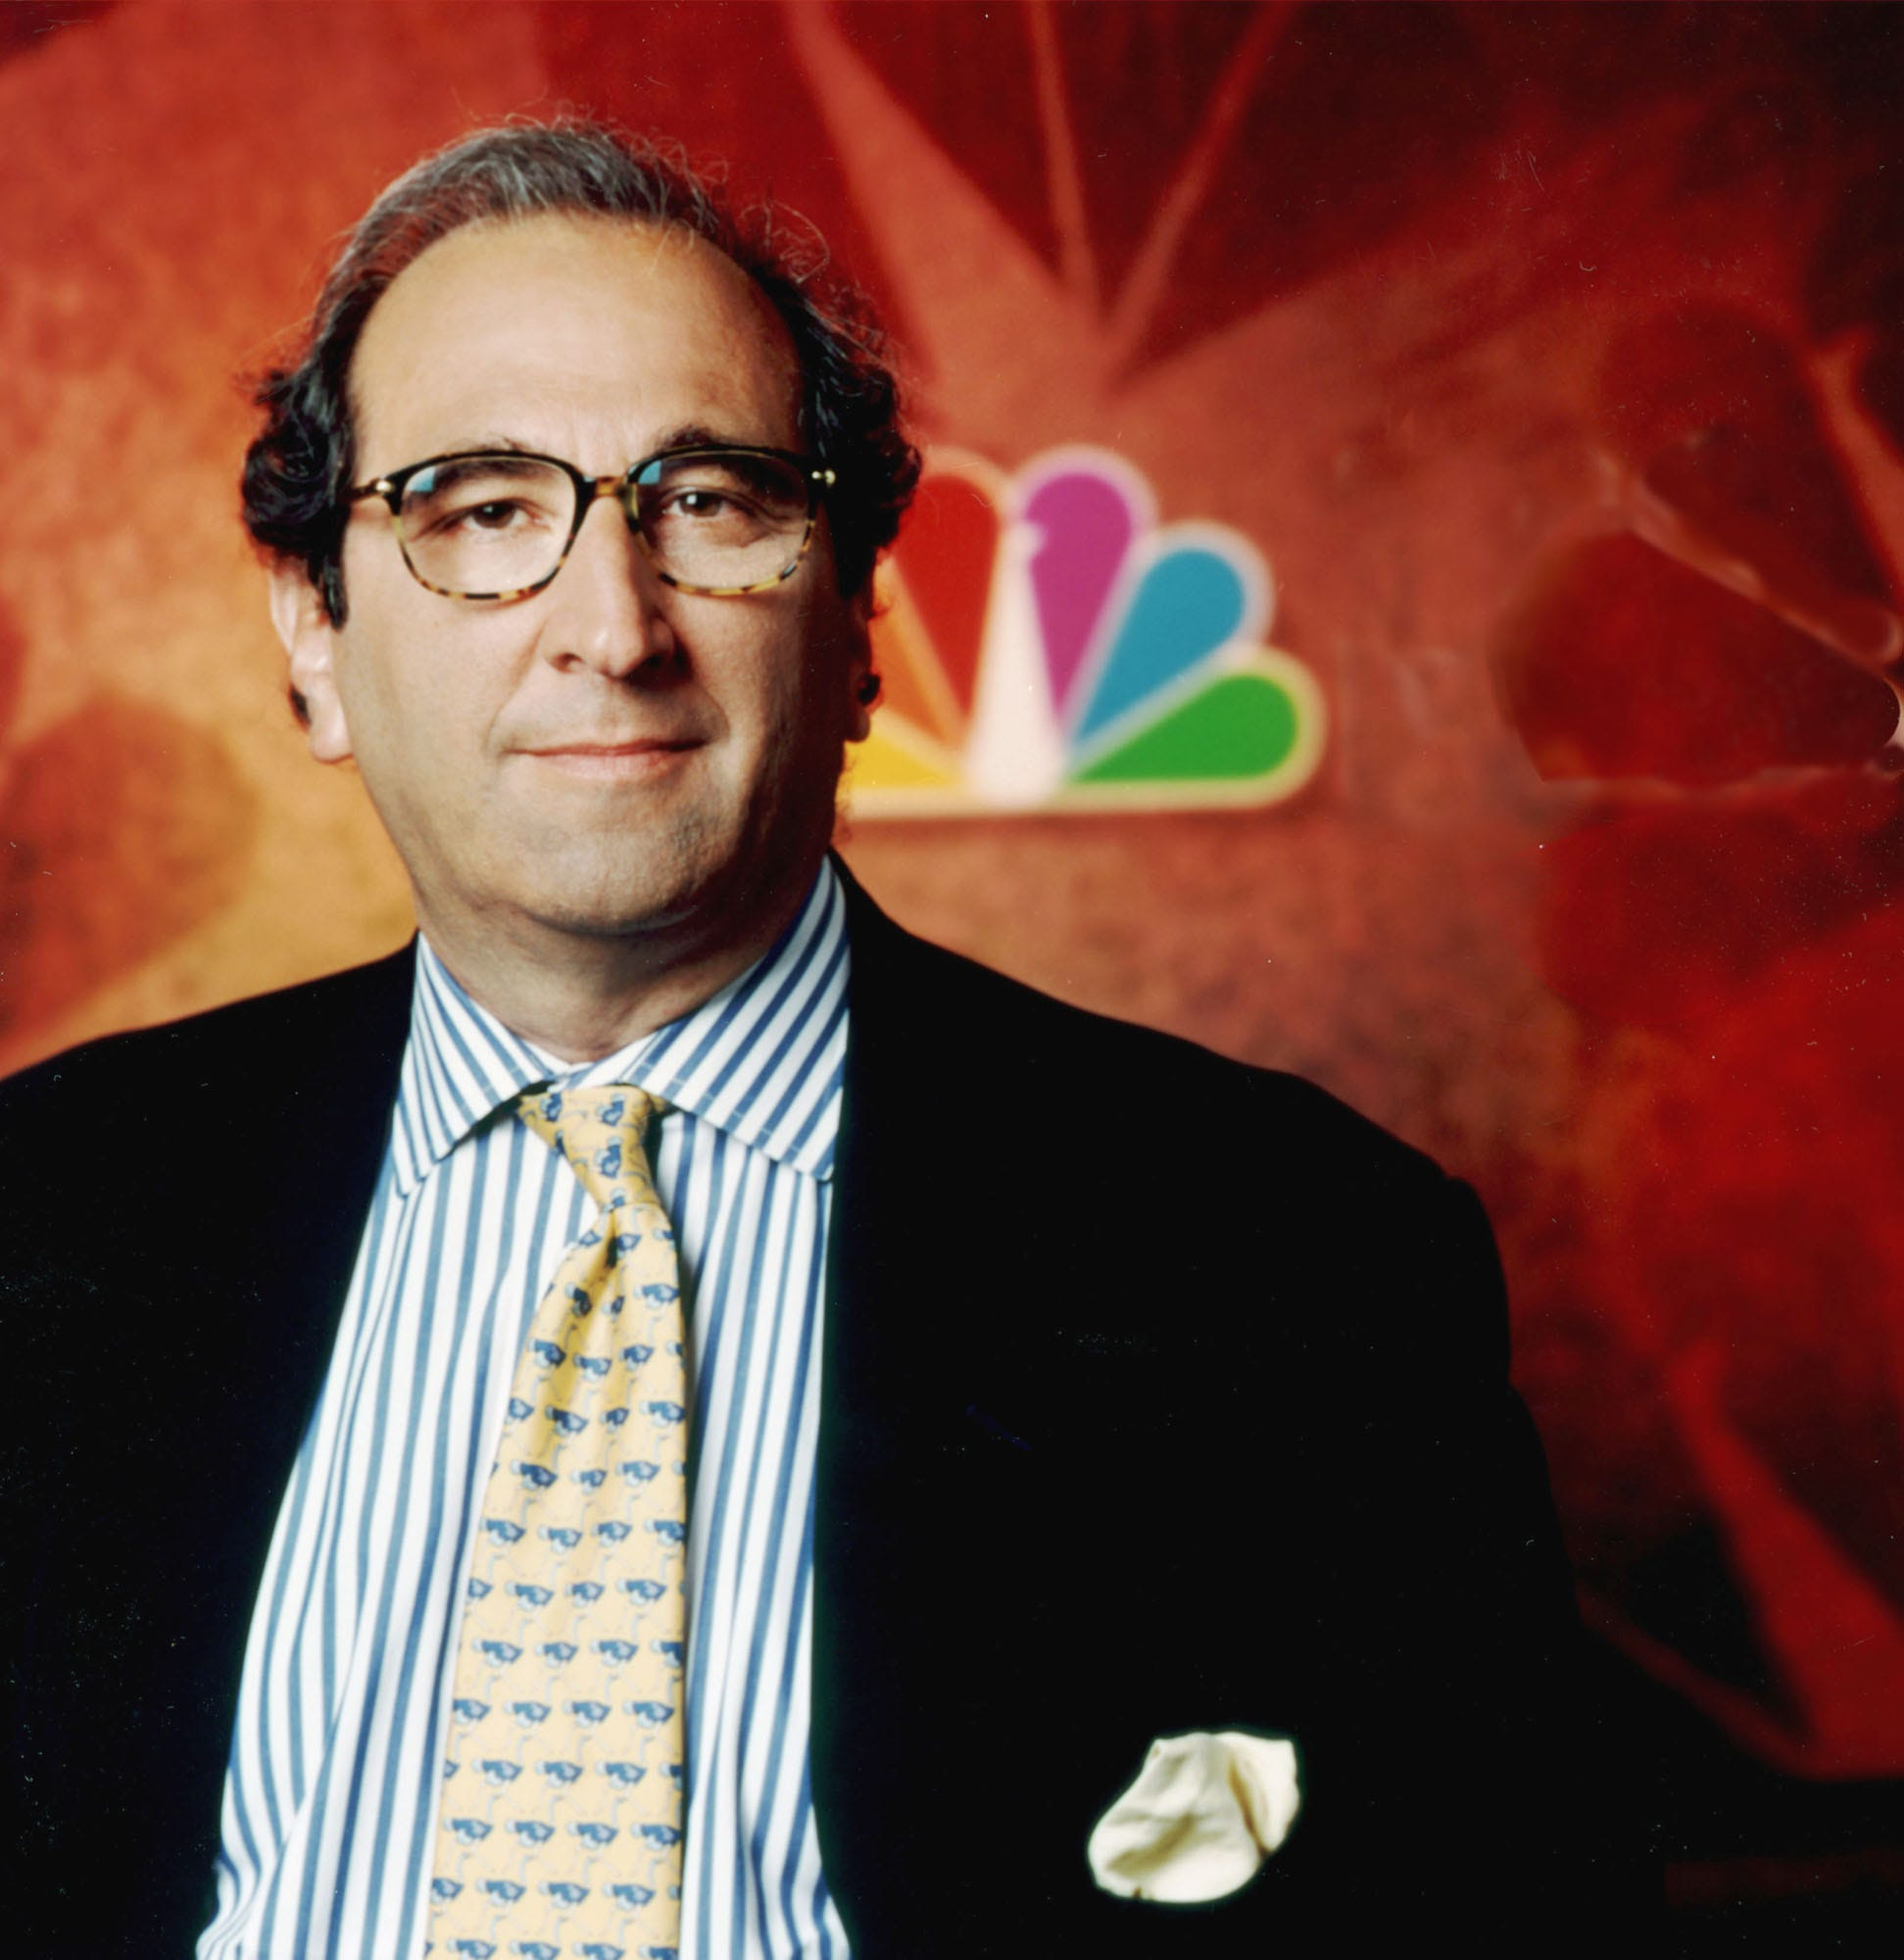 NBC's Andy Lack on Harvey Weinstein probe: 'At no point' did we obstruct Ronan Farrow